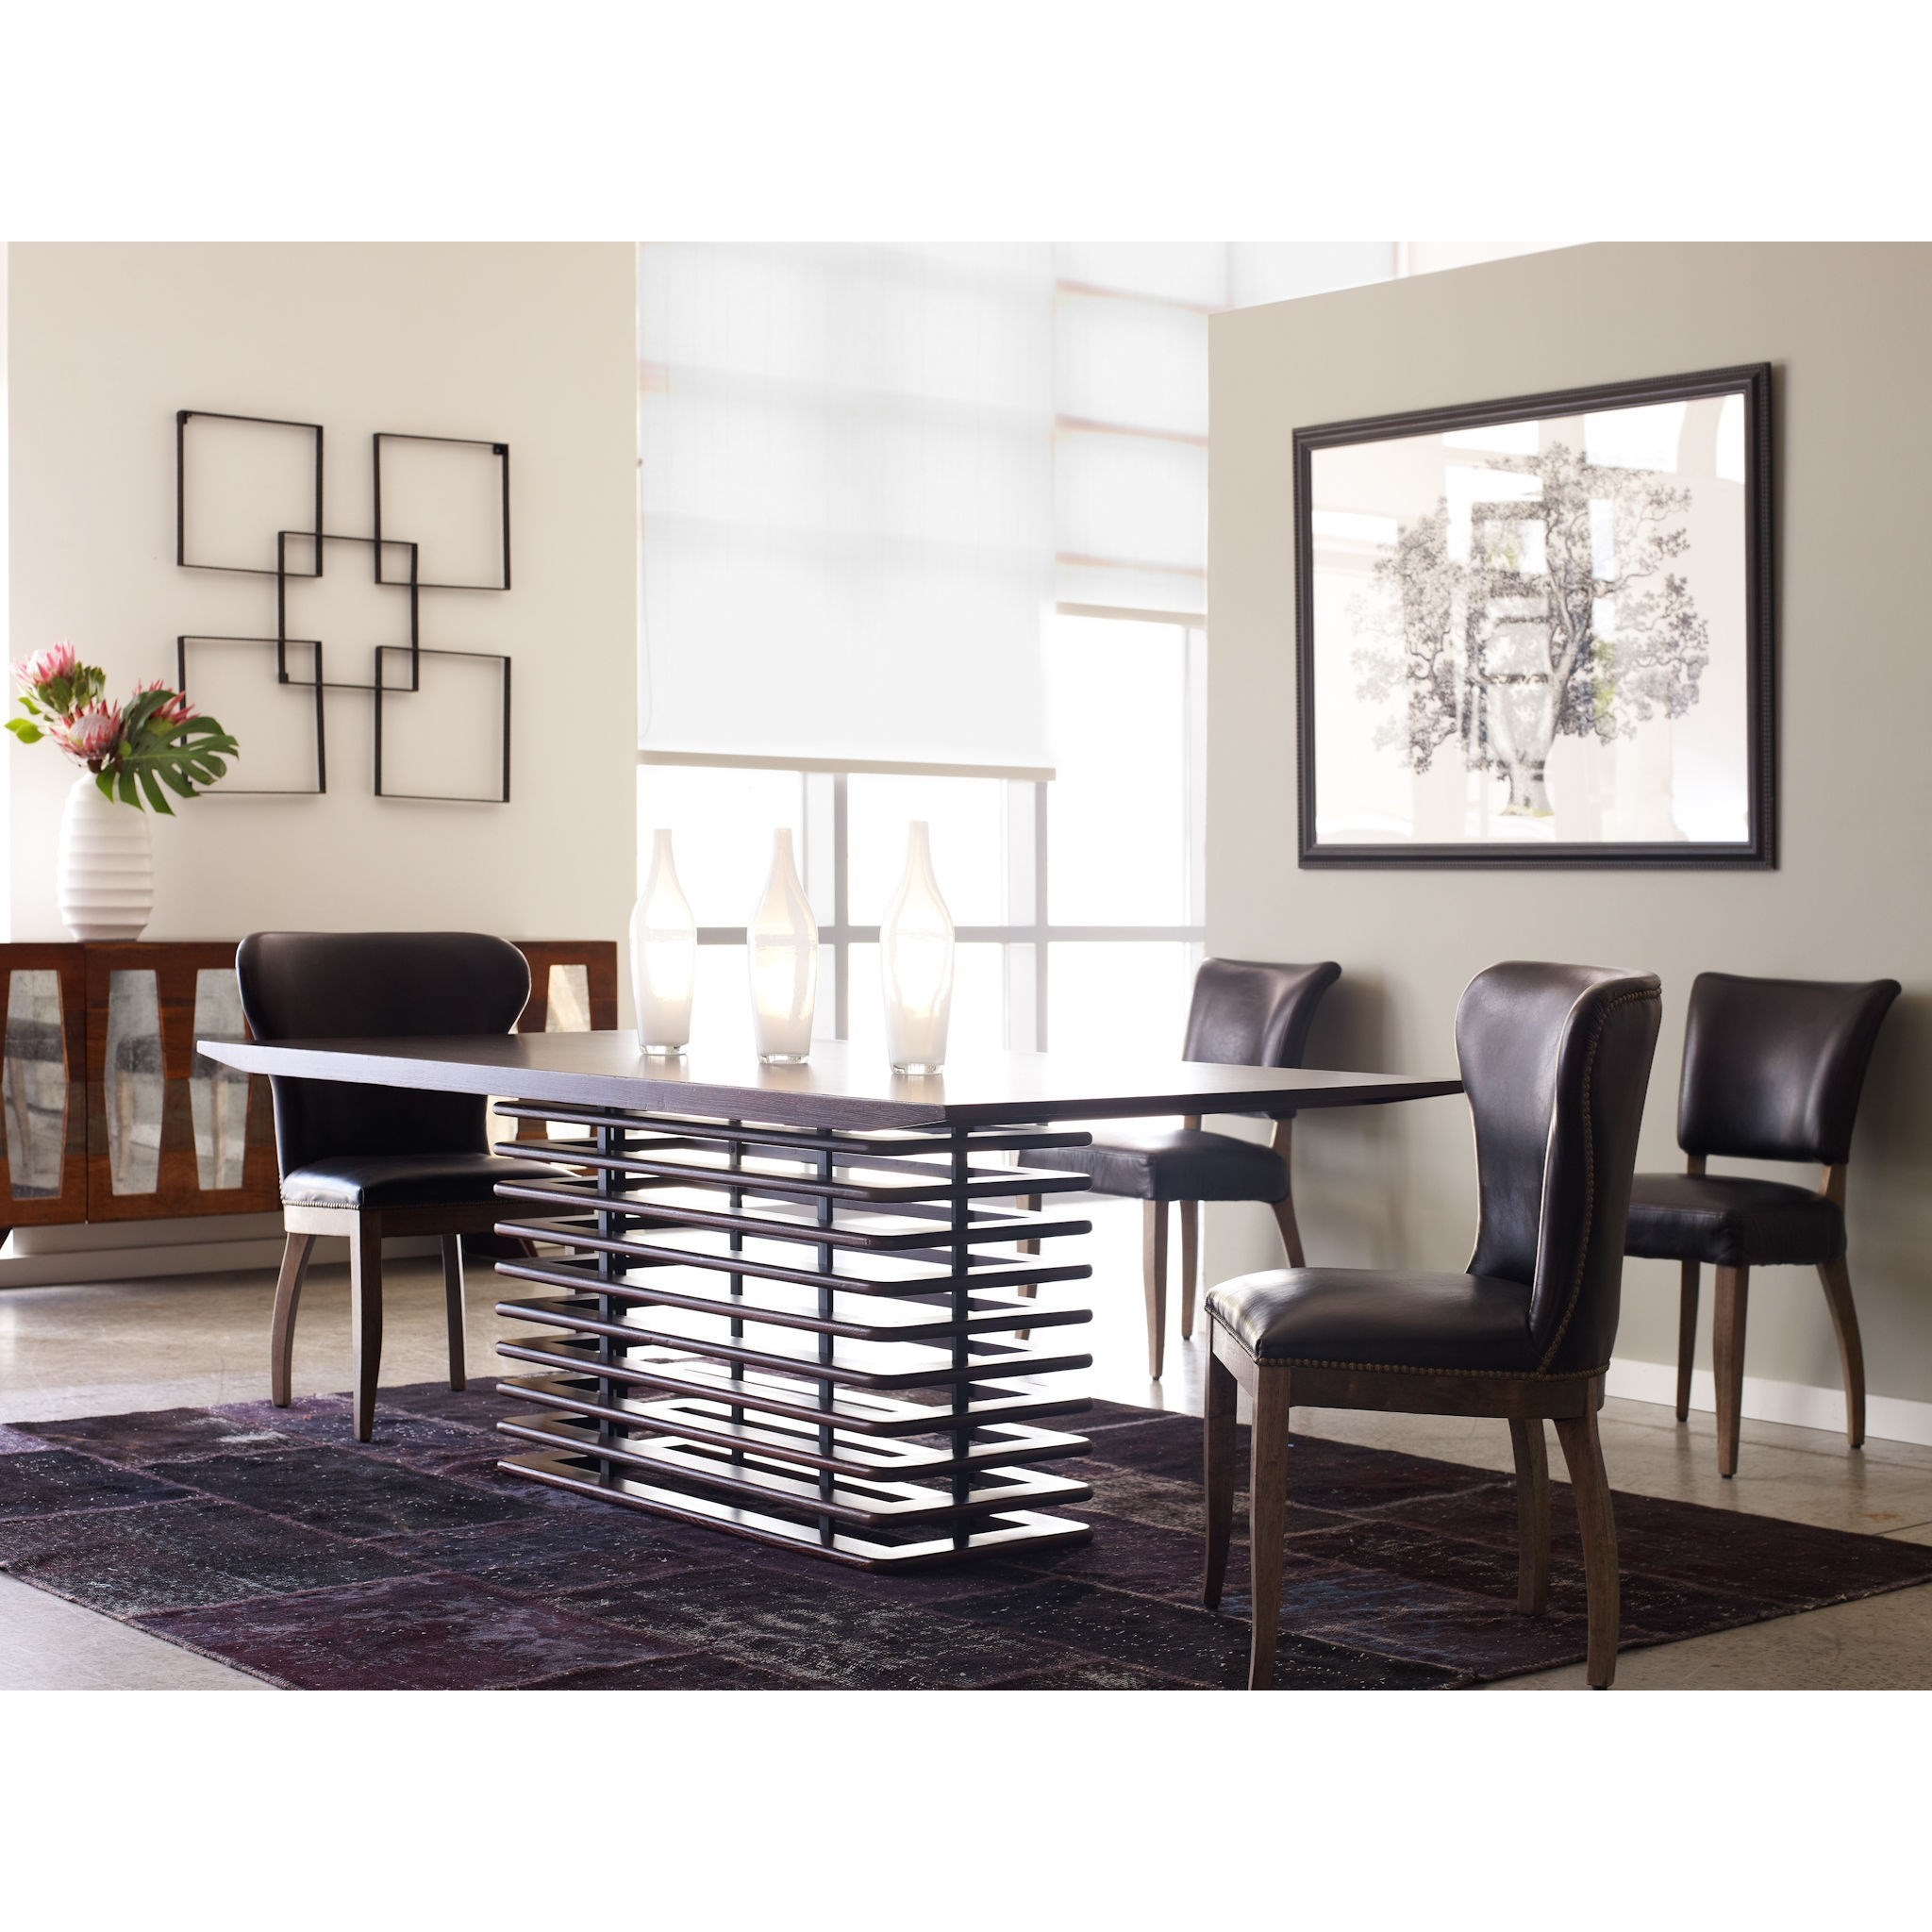 Four Hands Carnegie Richmond Dining Chair With Tapered Legs Jacksonville Furniture Mart